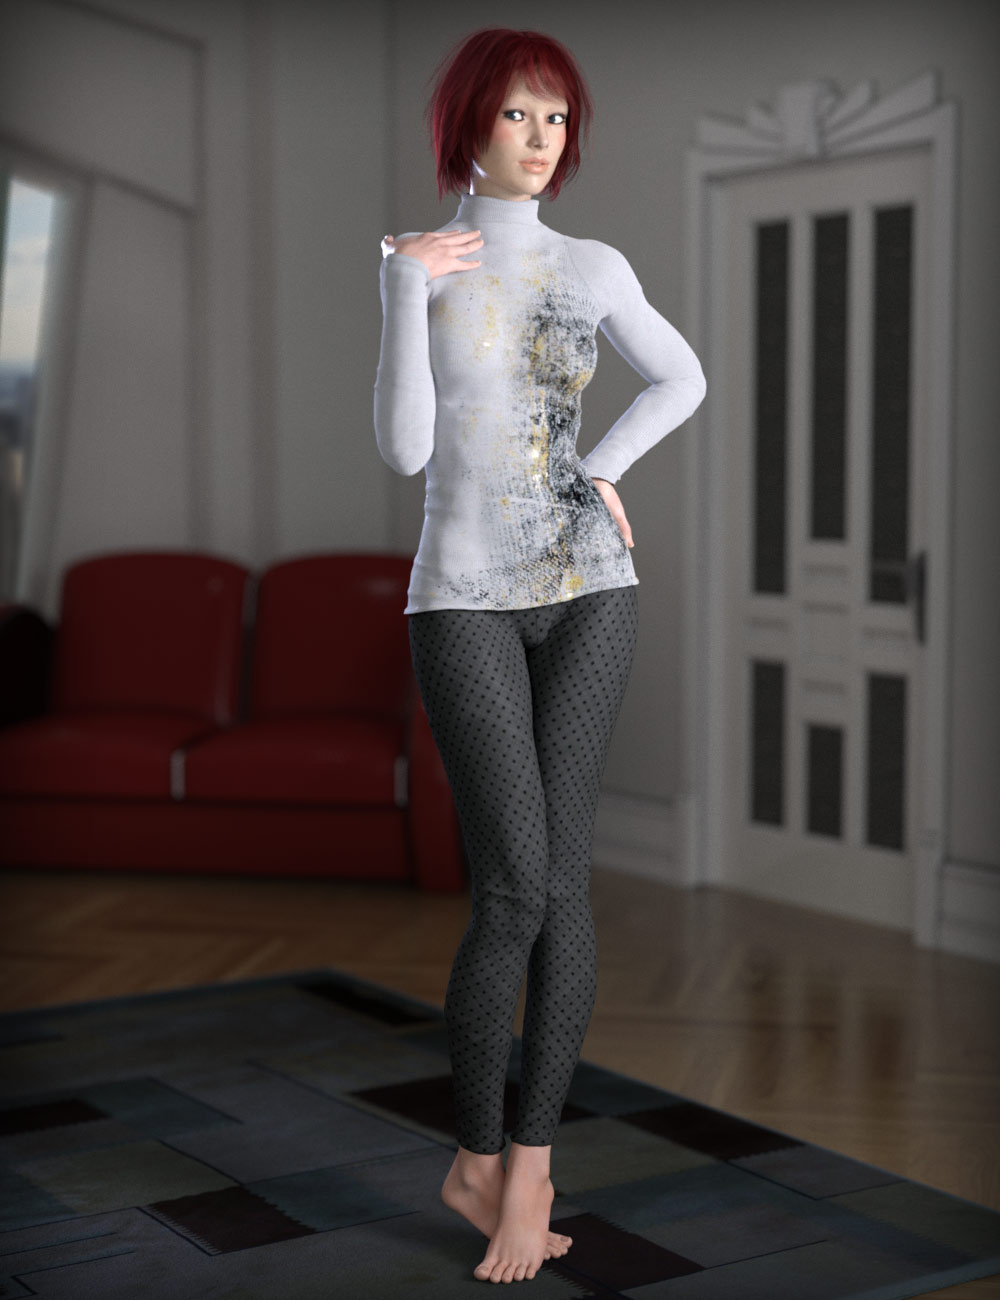 Sunday Casuals: Basics for Genesis 3 Female(s) by: esha, 3D Models by Daz 3D